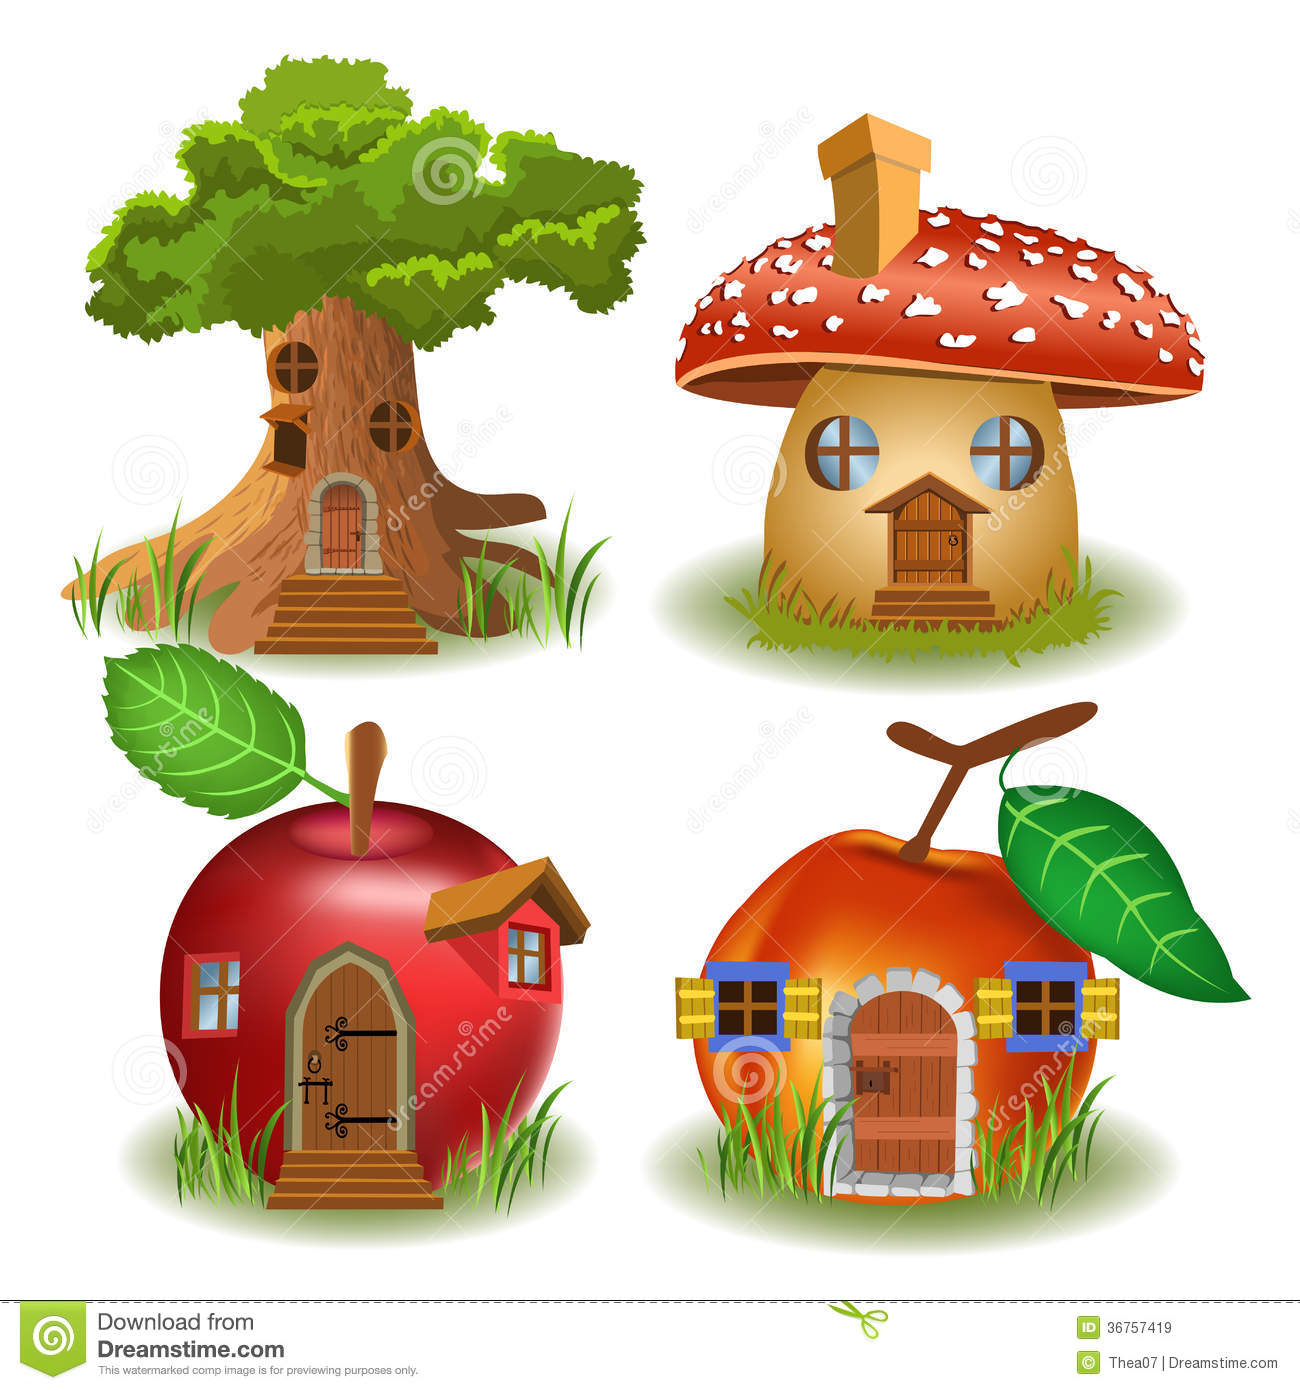 fairytale houses cartoon illustration tree house mushroom house apple house peach house isolated white background 36757419